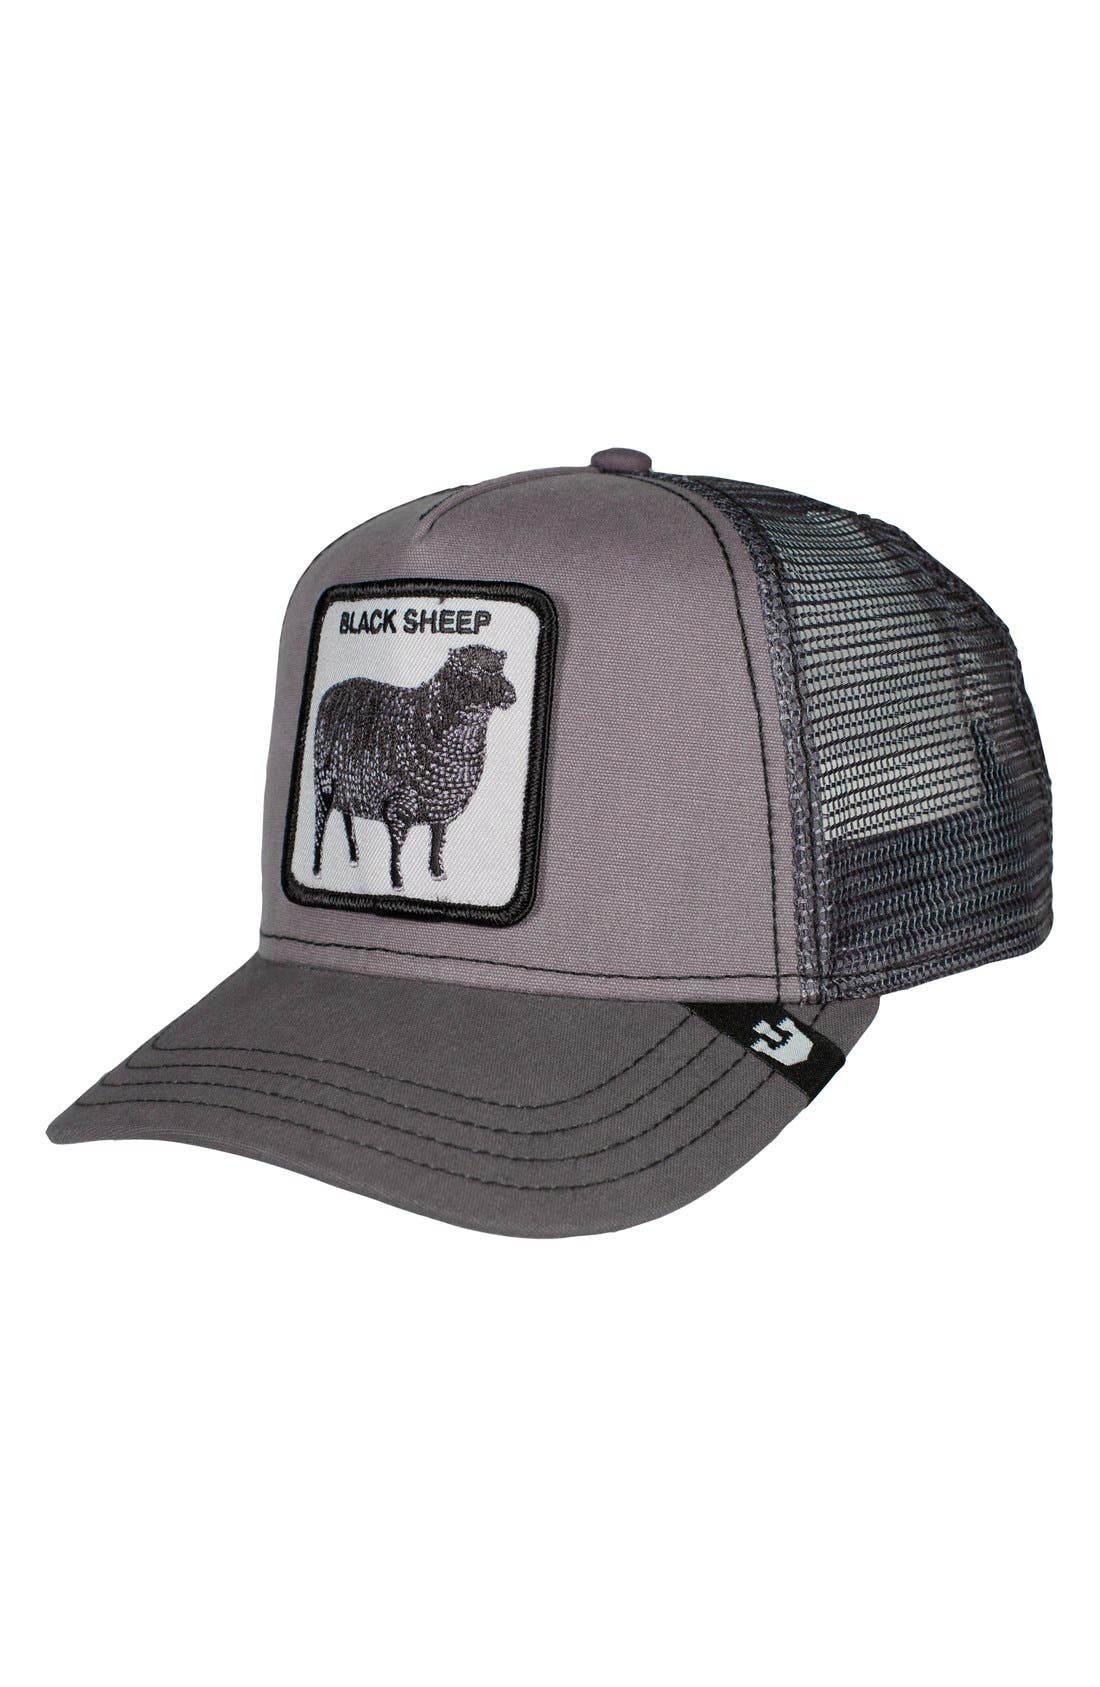 'Shades of Black' Mesh Trucker Hat,                         Main,                         color, 020